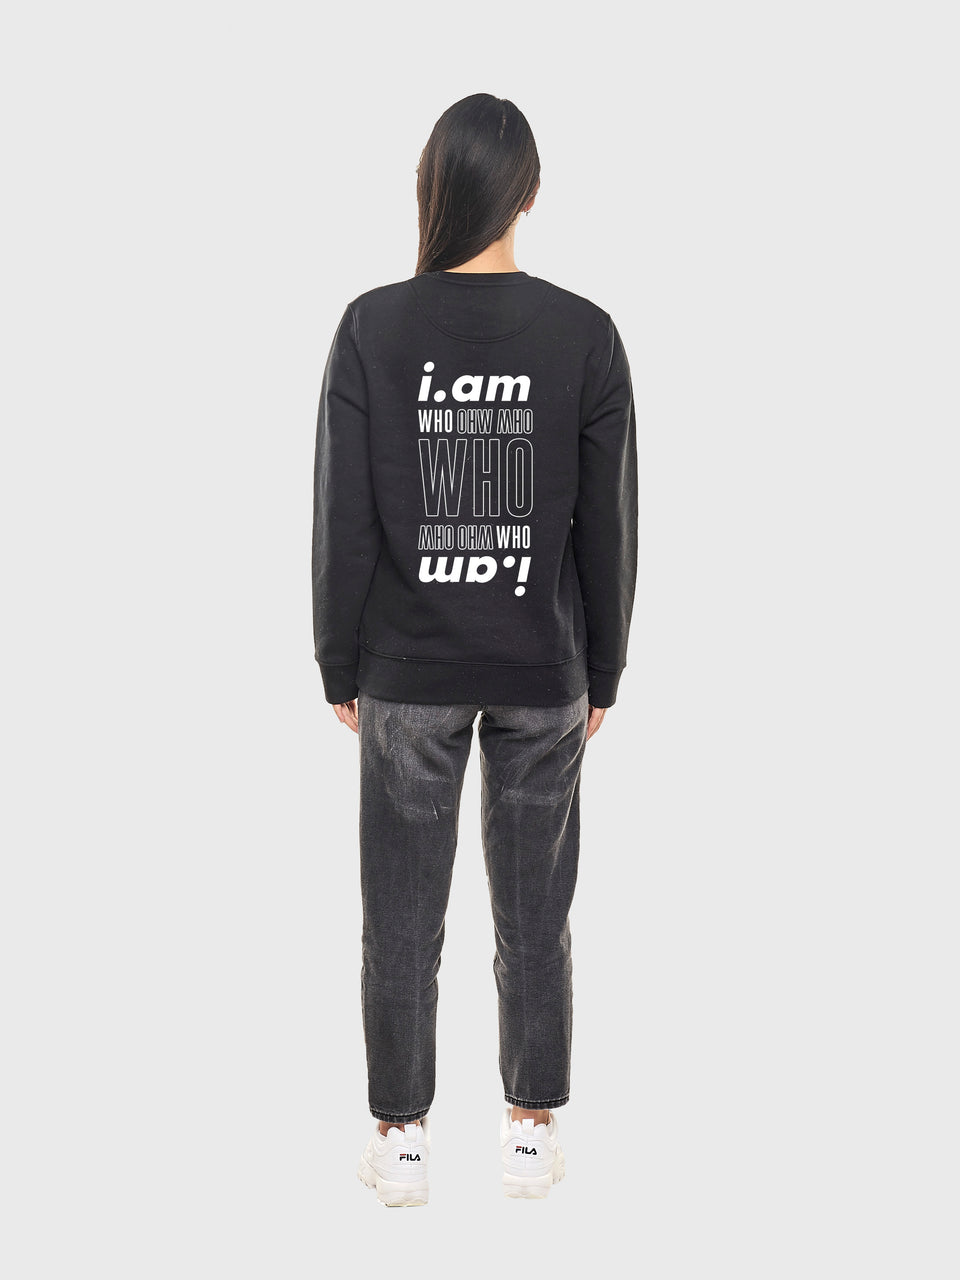 I am who I am - Black - Unisex sweatshirt